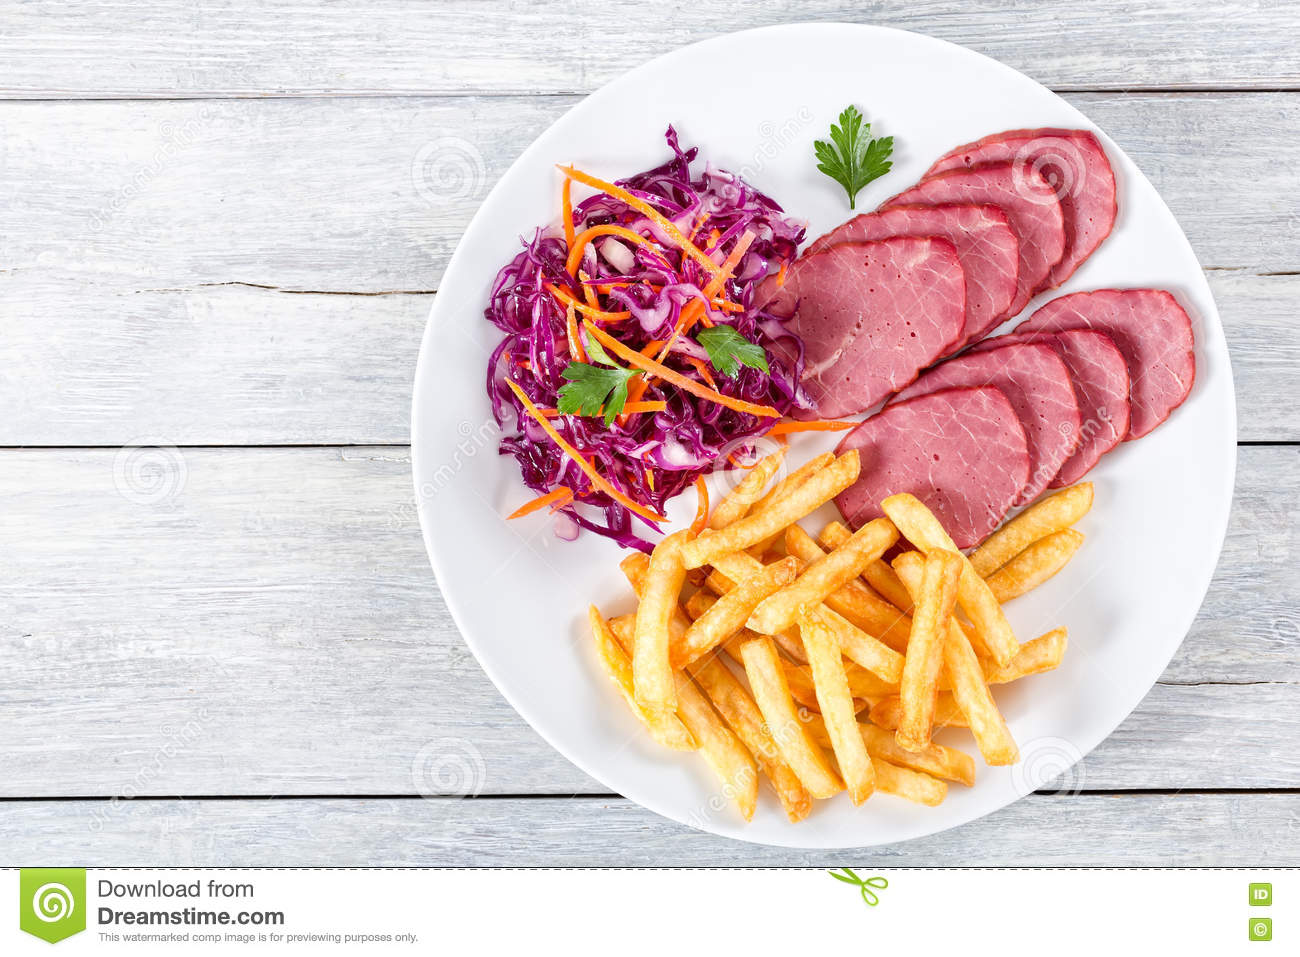 recipe: red cabbage in french [20]